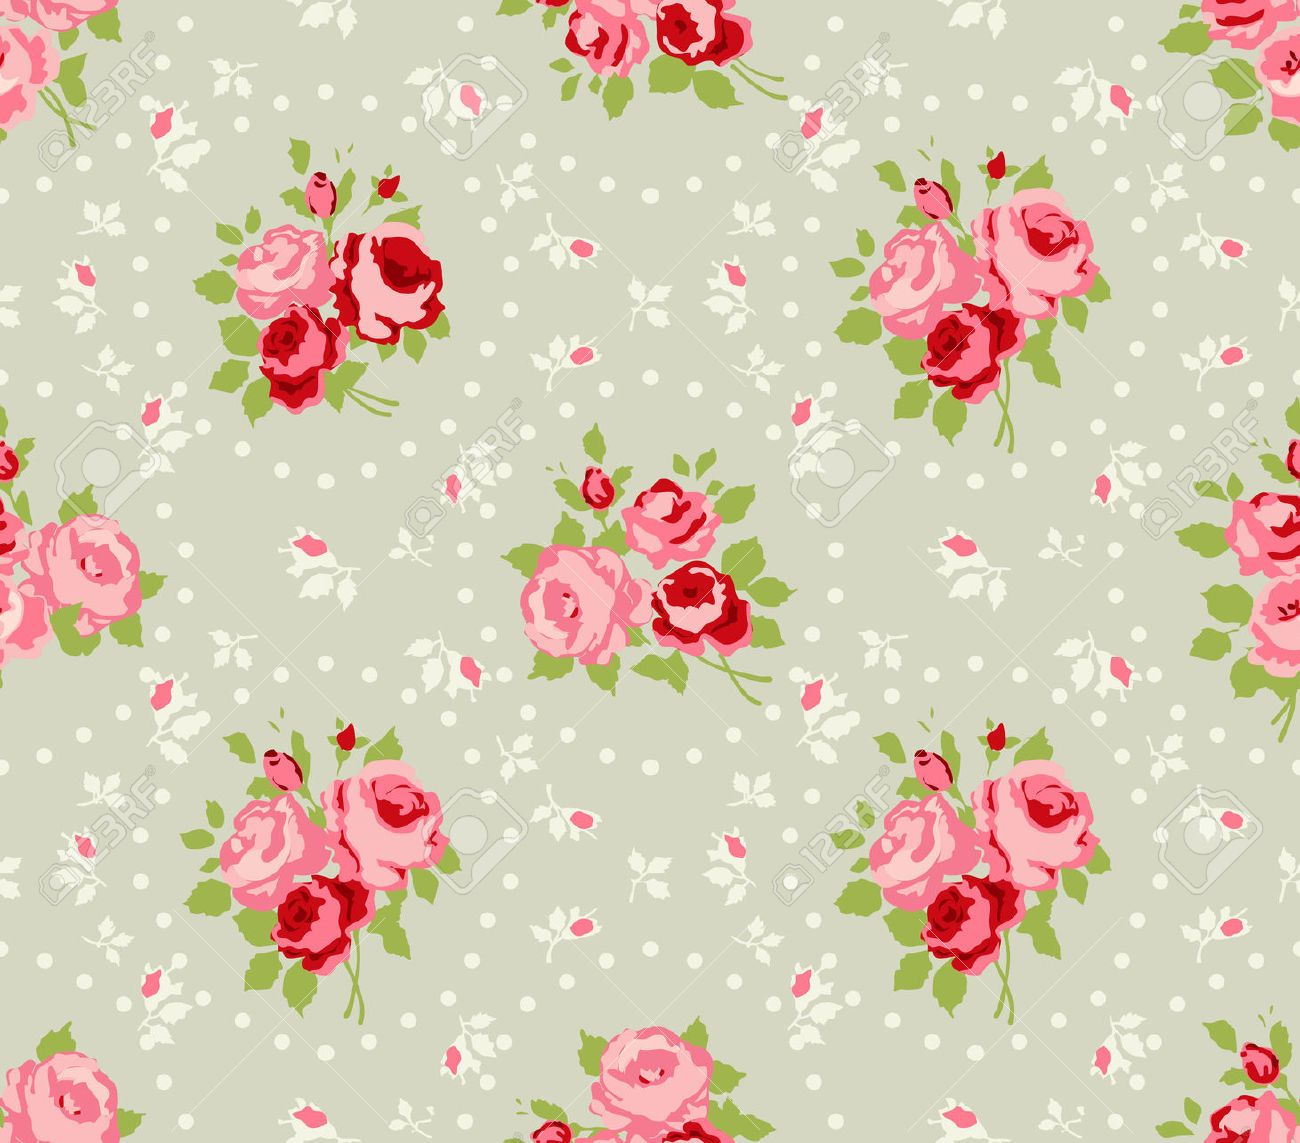 free scrapbook paper shabby chic - Google Search | Shabby ...